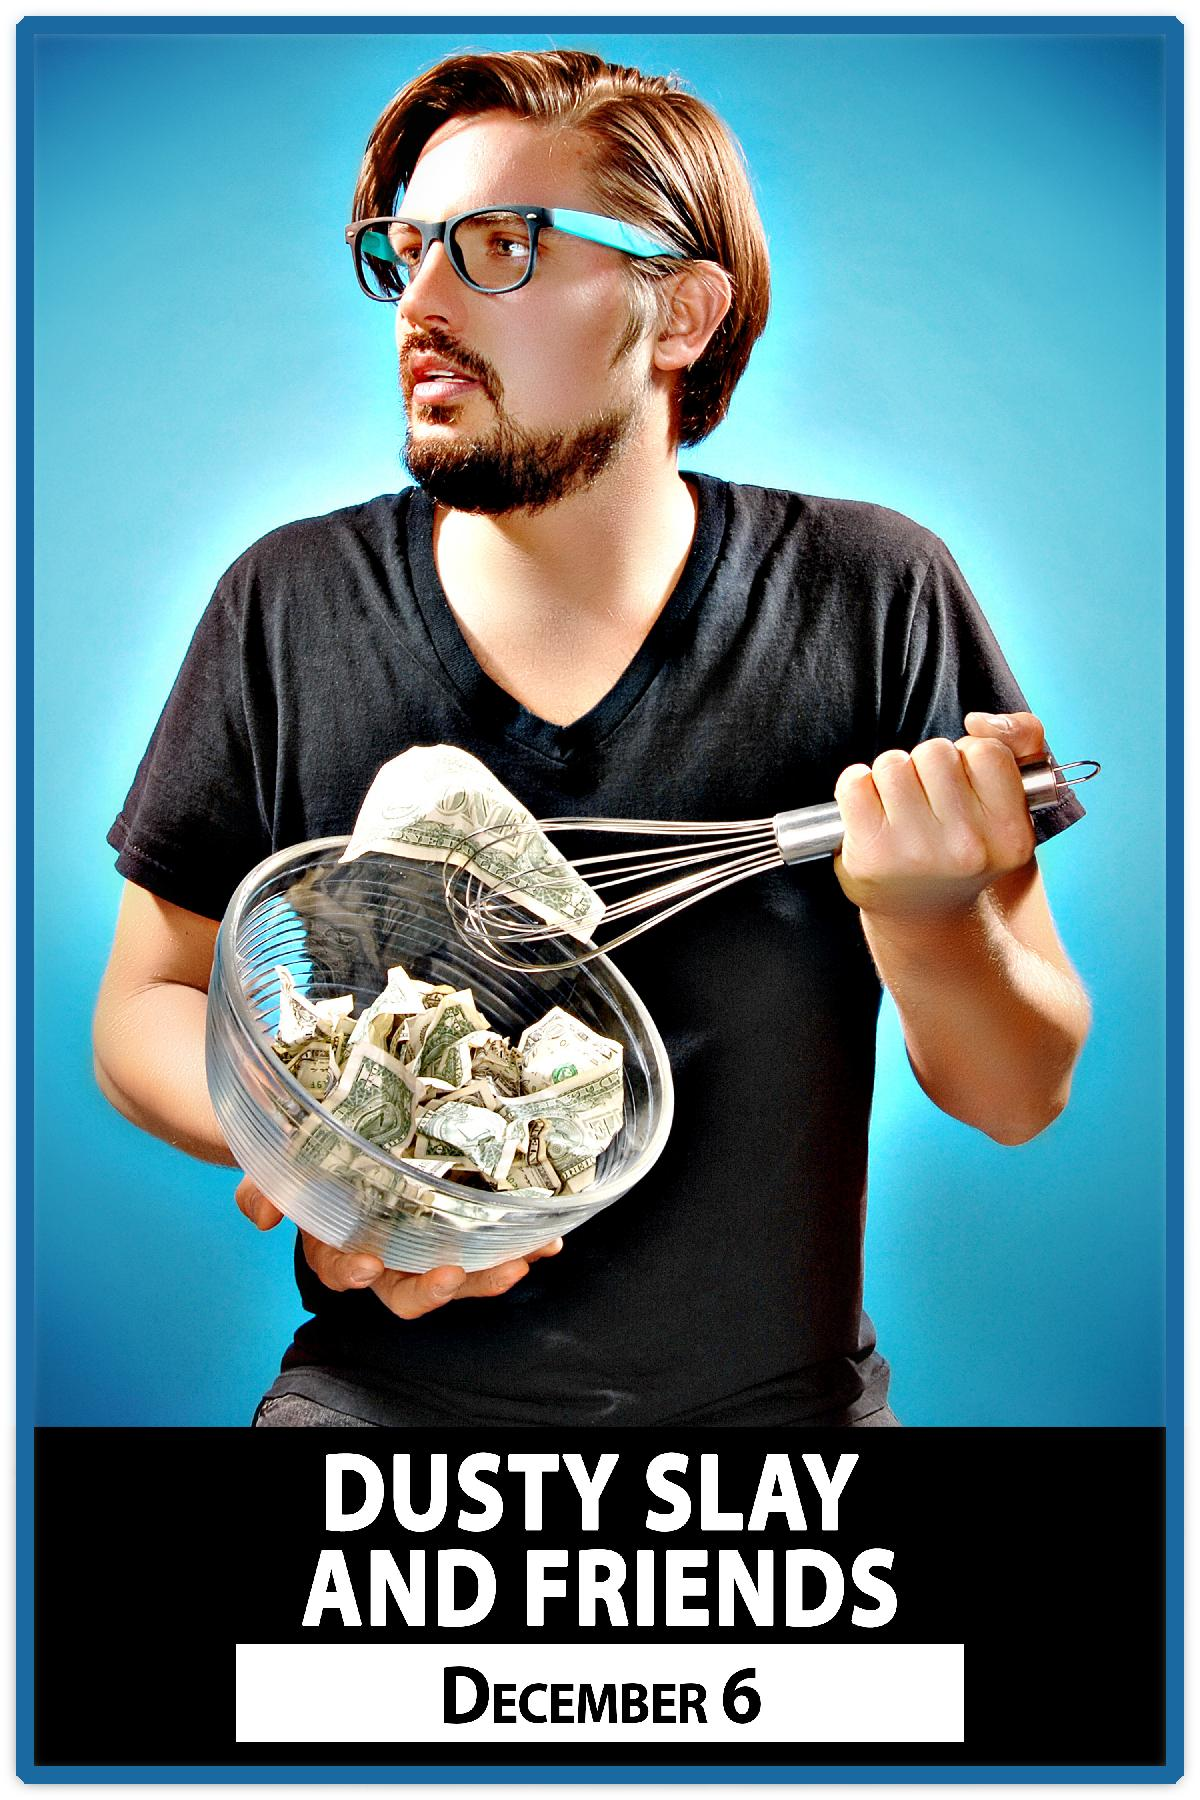 Dusty Slay and Friends live at Zanies Comedy Club Nashville December 6 2015